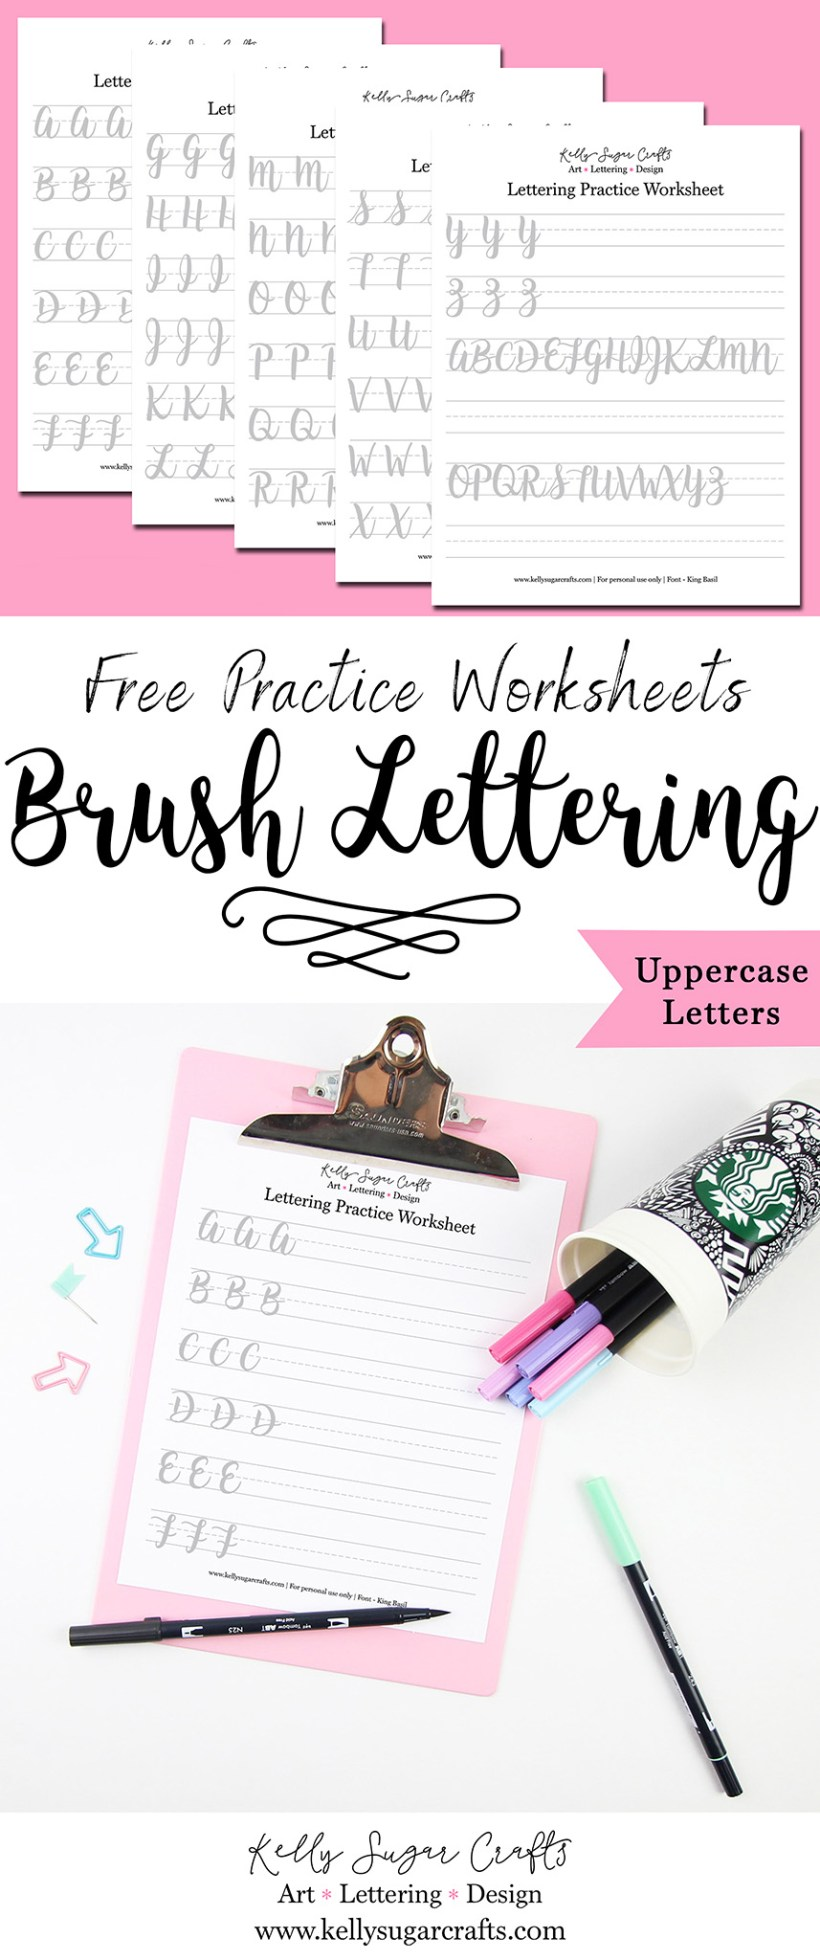 Free Lettering Practice Worksheets Brush Uppercase Letters By Kelly Sugar Crafts